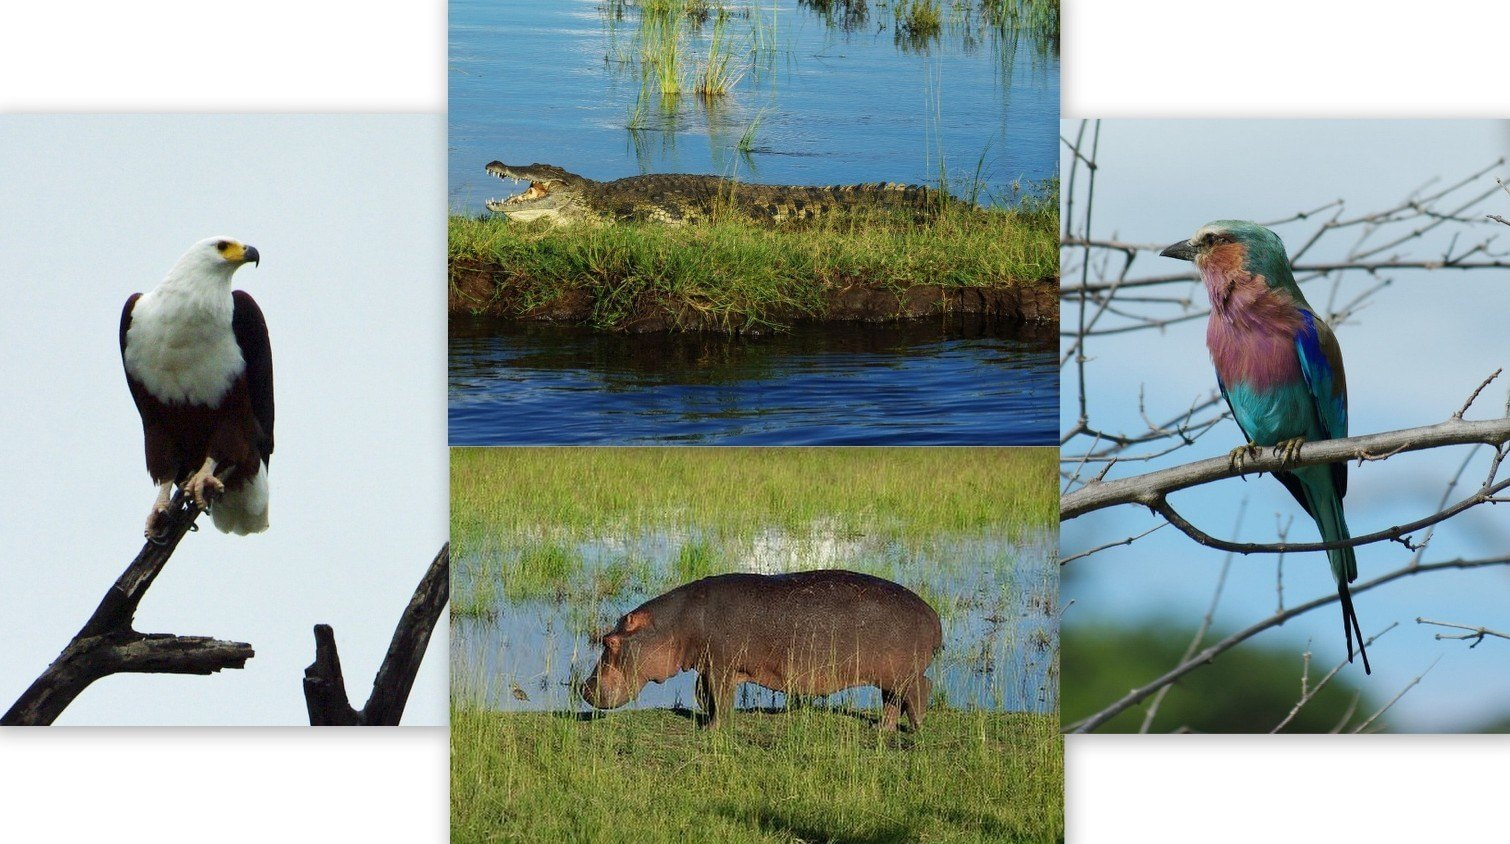 Wildlife of the Okavango Delta